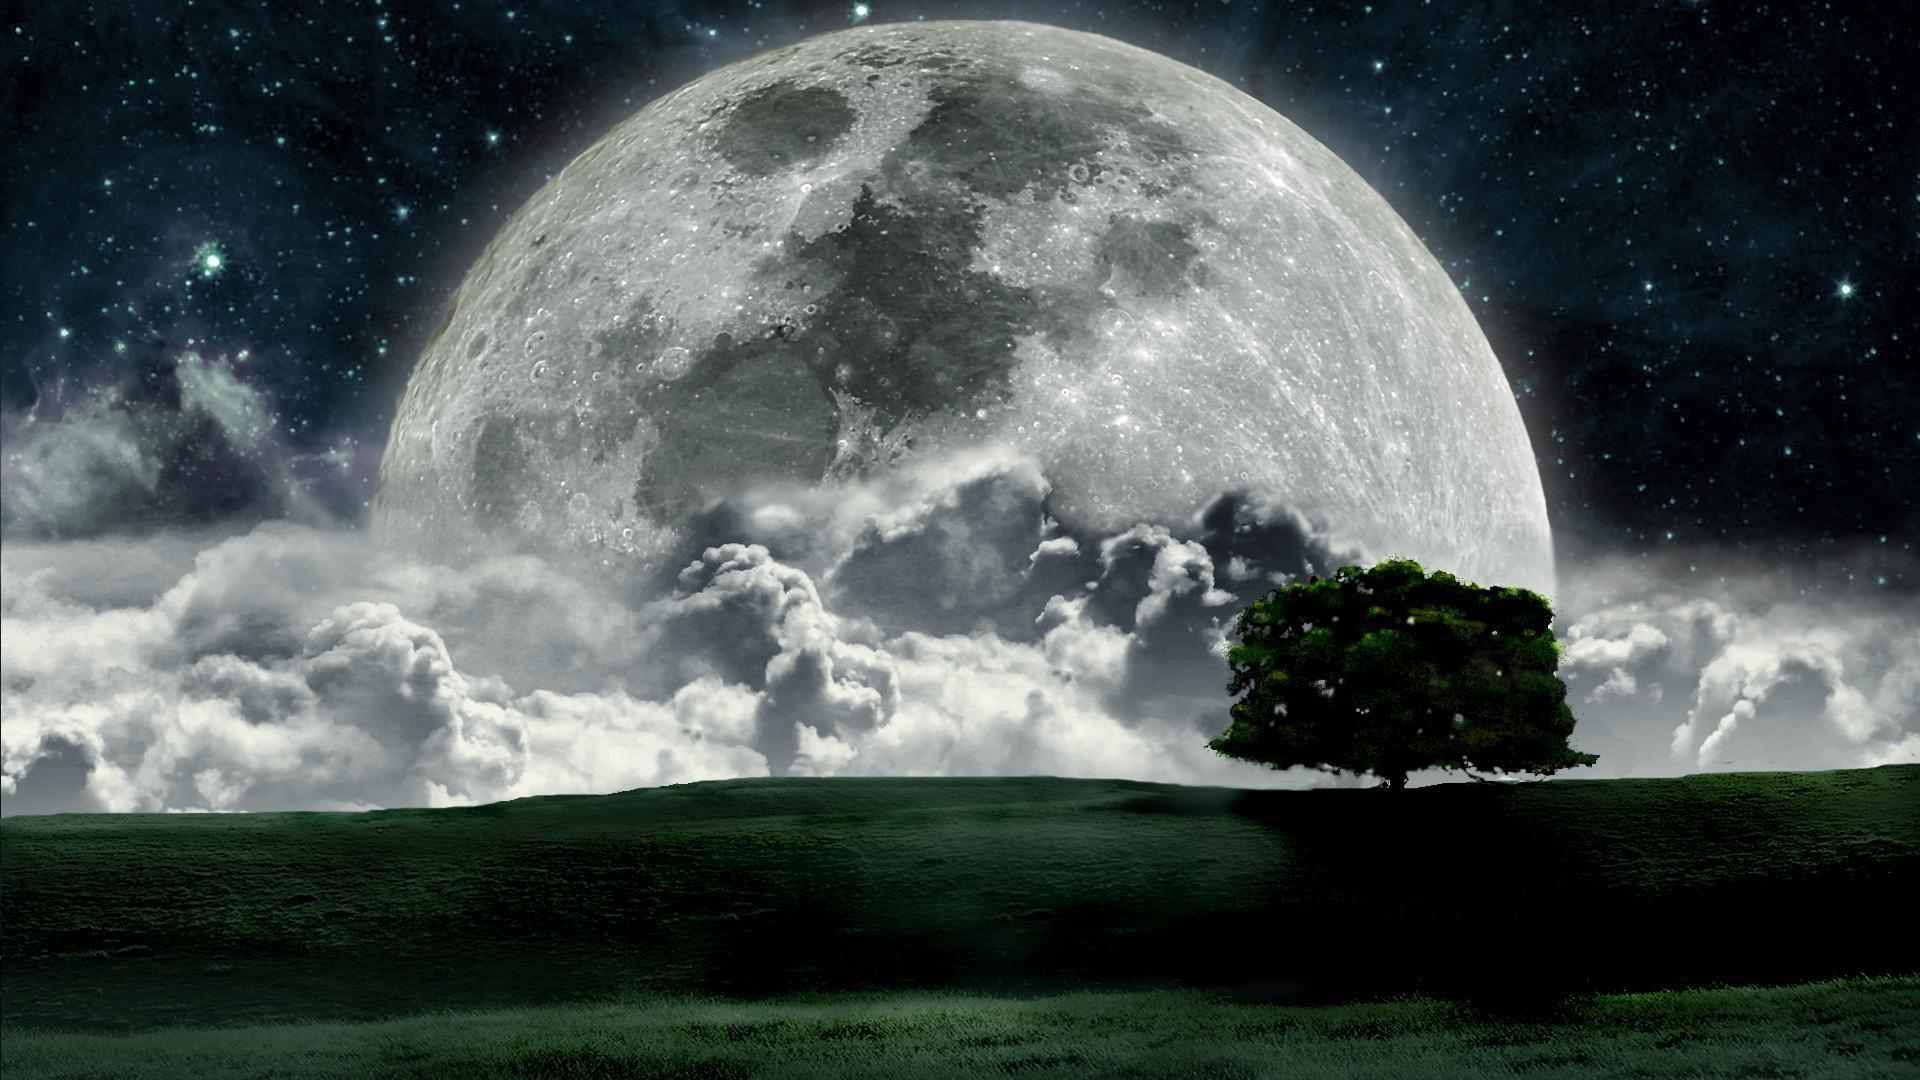 Moon Hd Wallpapers Wallpaper Cave